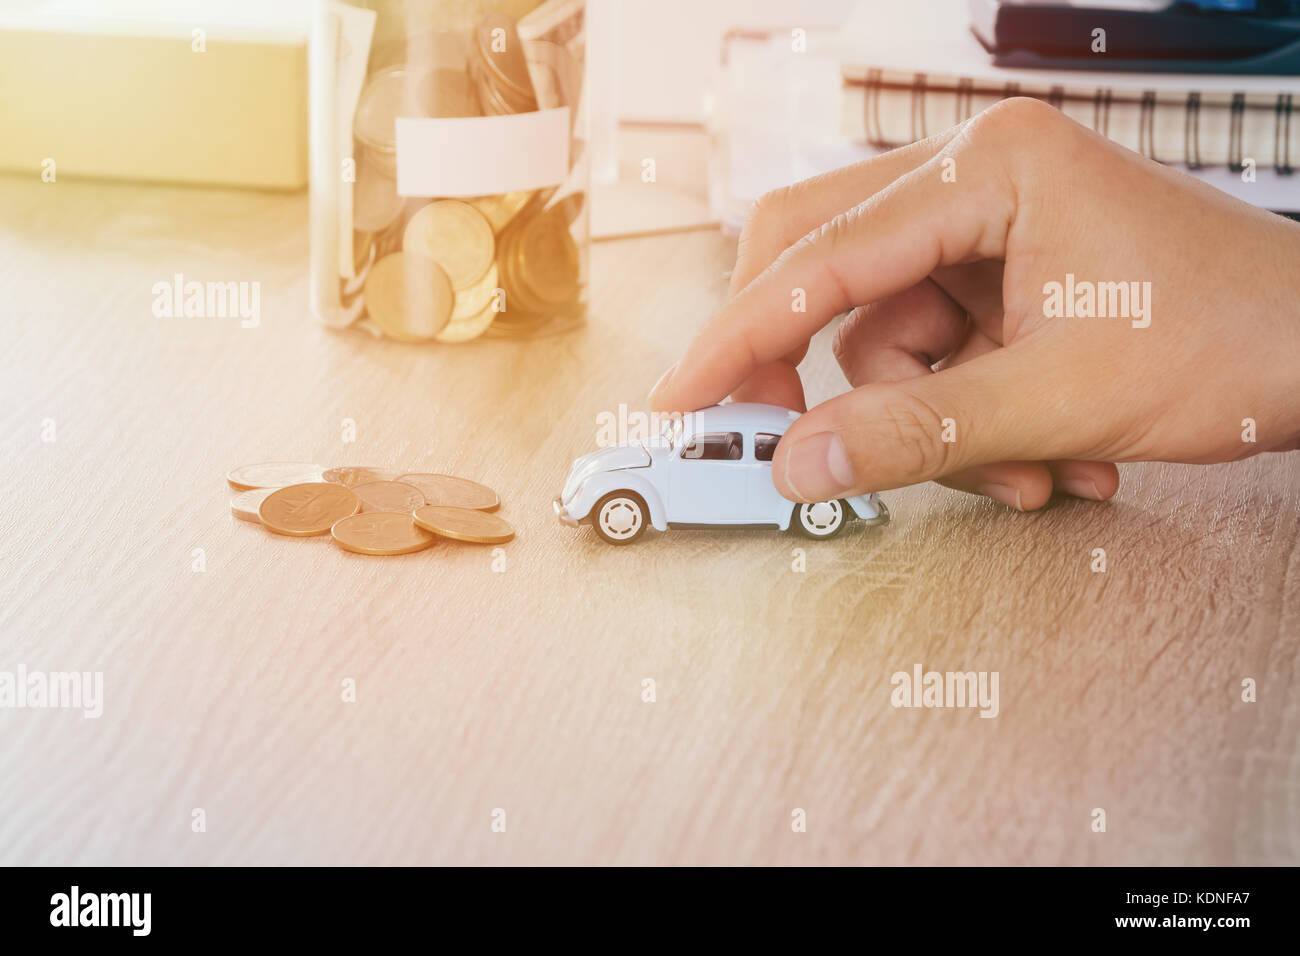 Car toy in the men hand on desk with blured money coin in jar bank saving Concept for maintenance costs and taxes - Stock Image